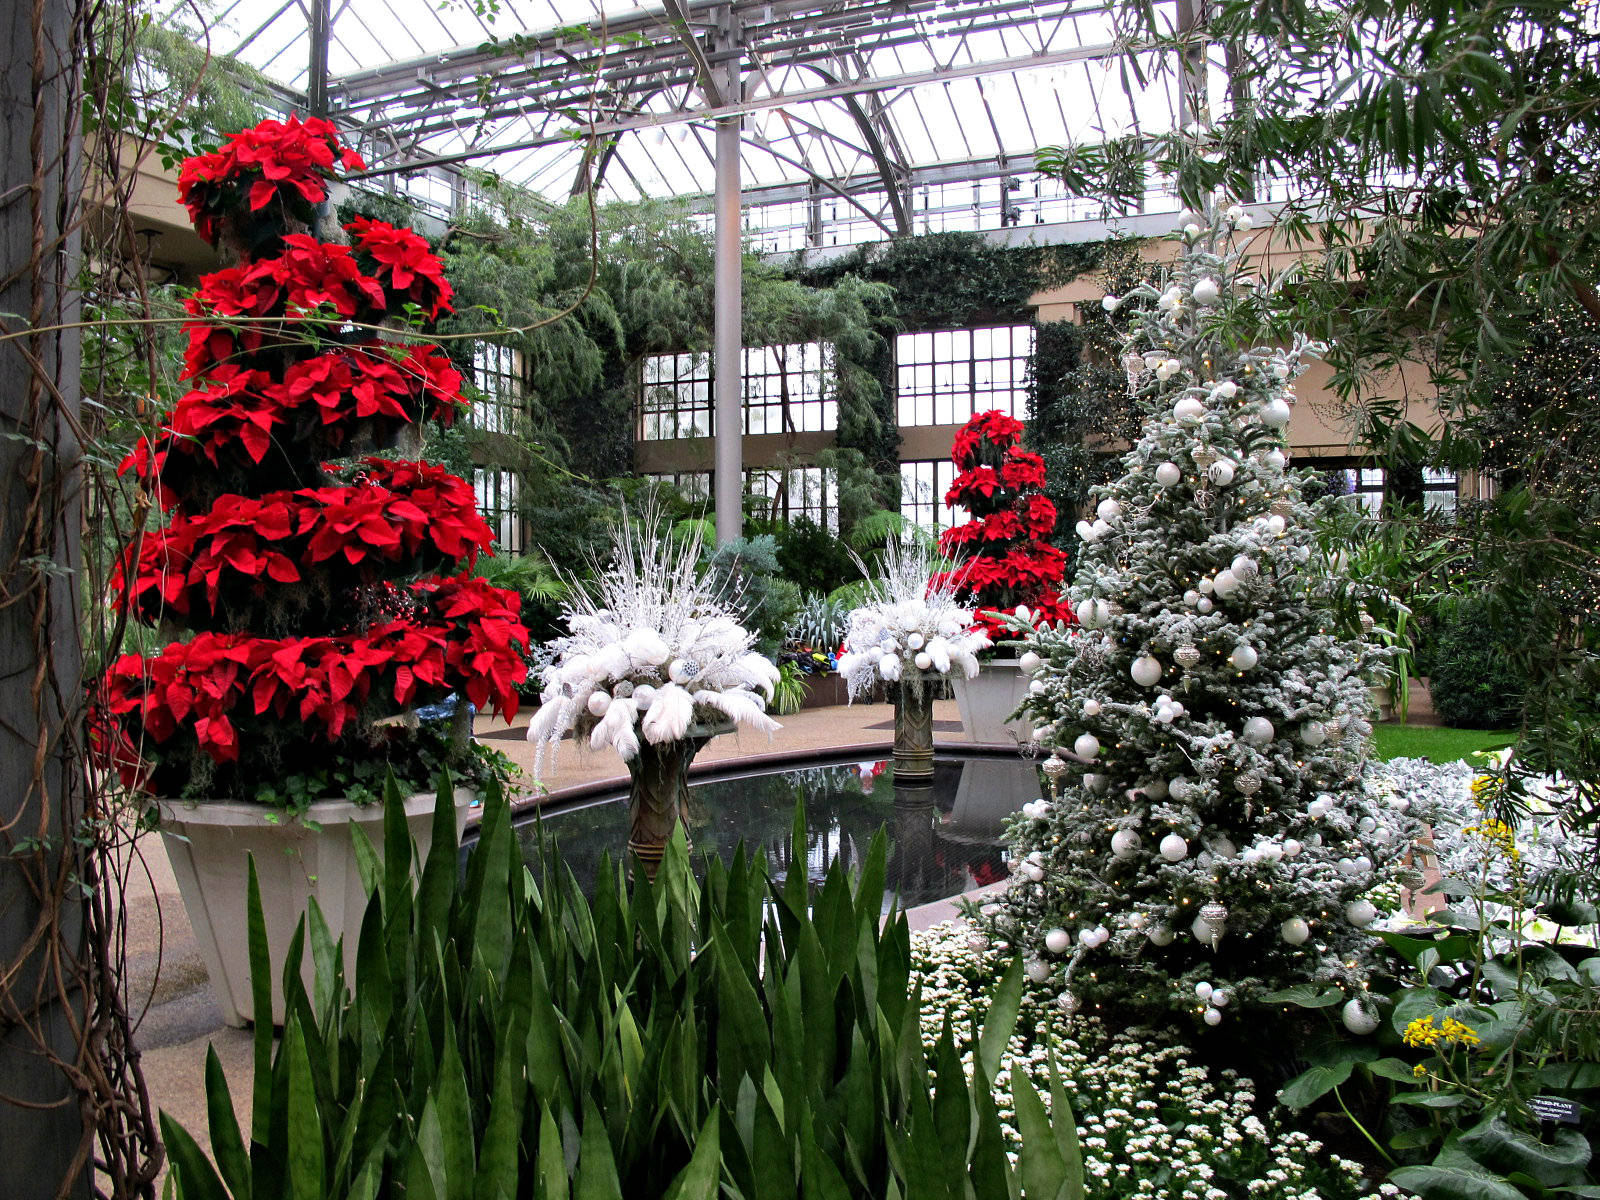 A Longwood Christmas Longwood Gardens Conservatory